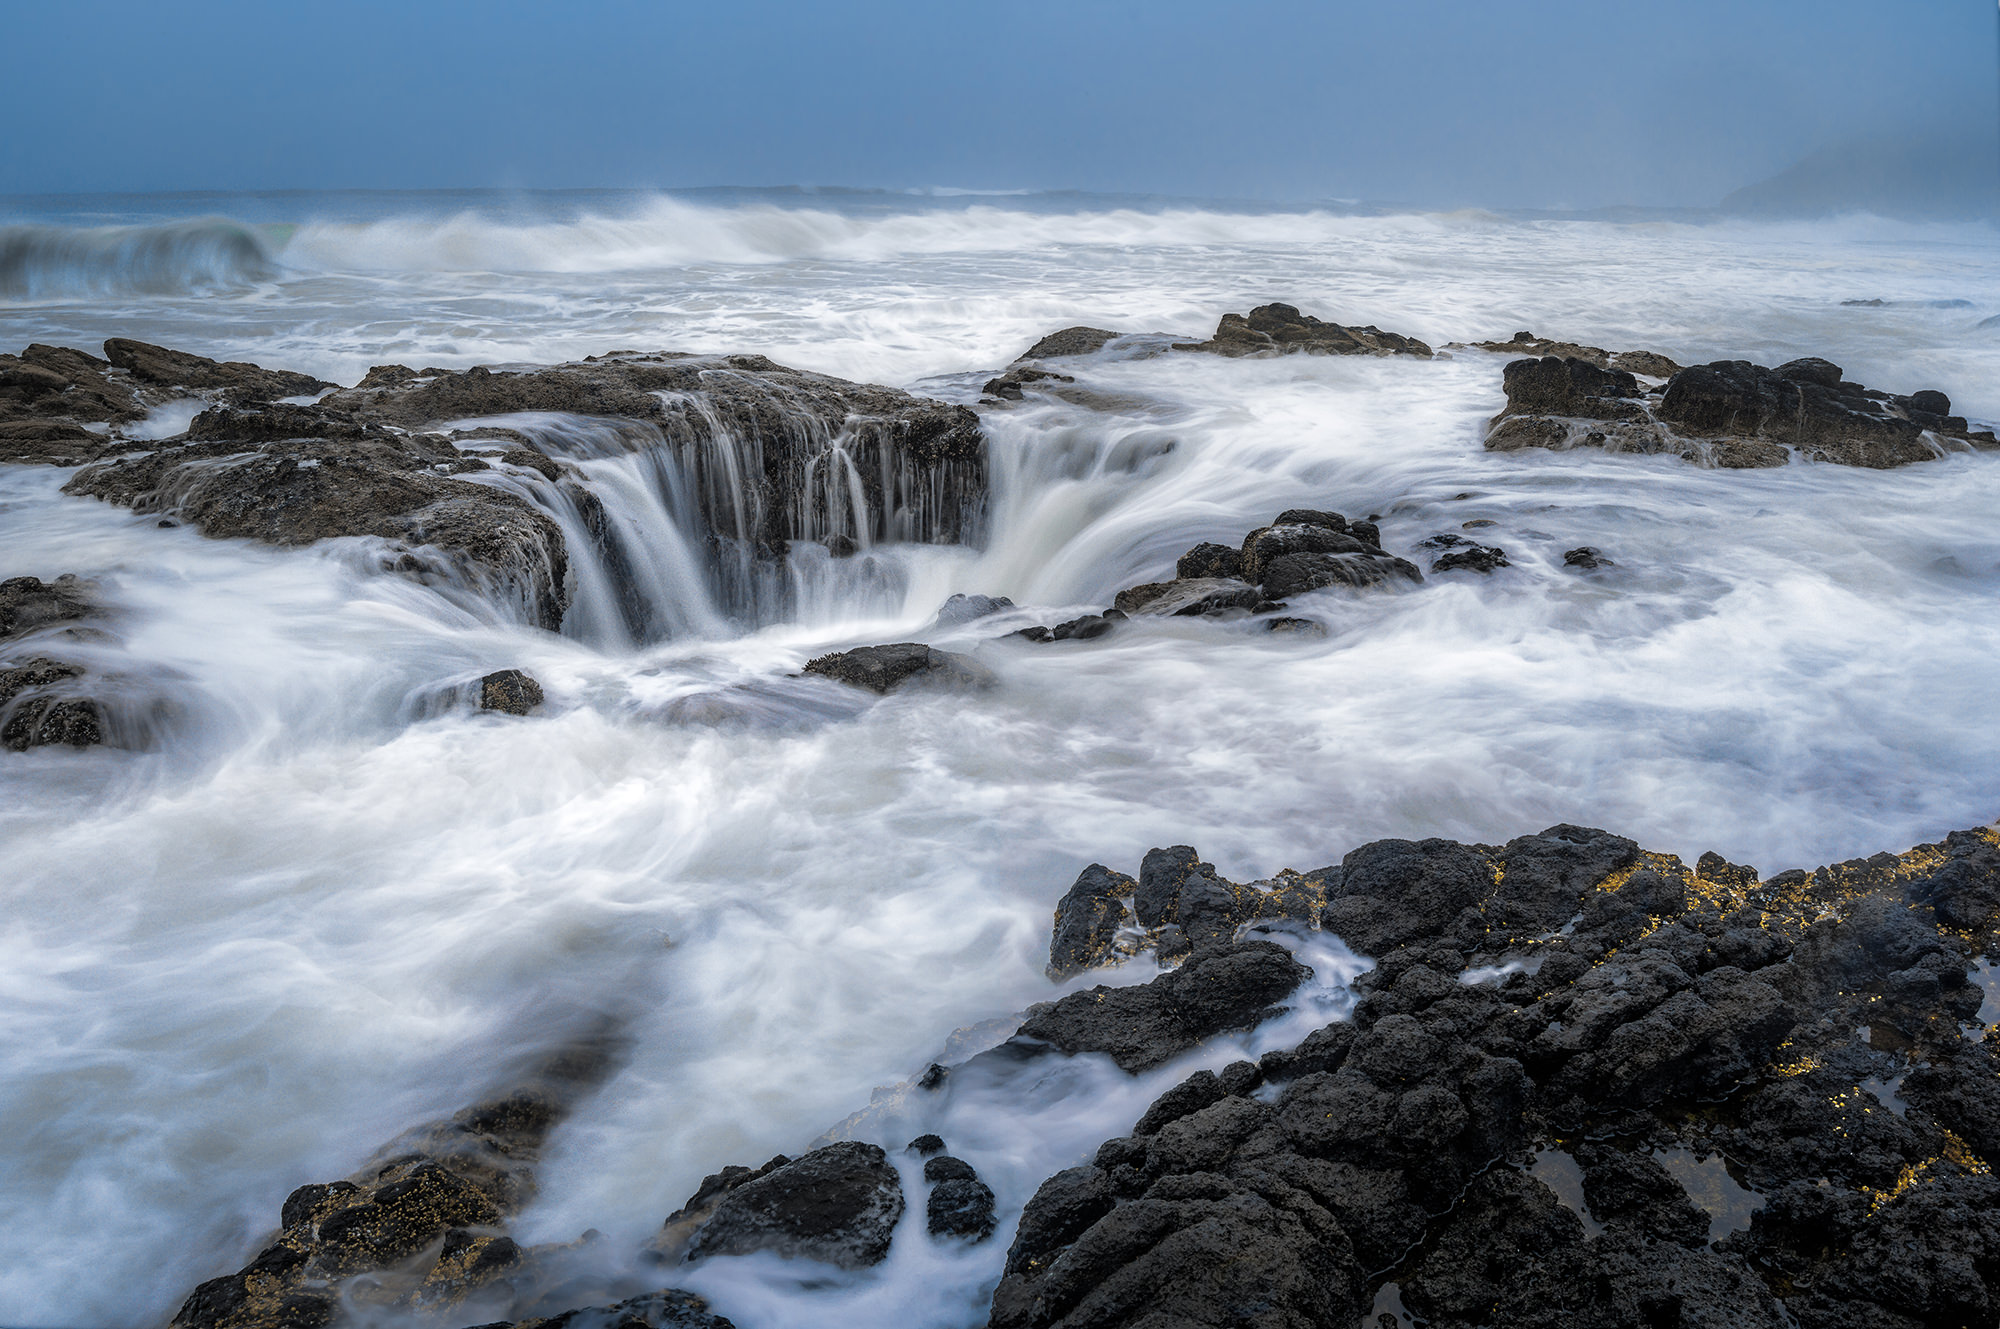 Thor's Well - Central Oregon Coast